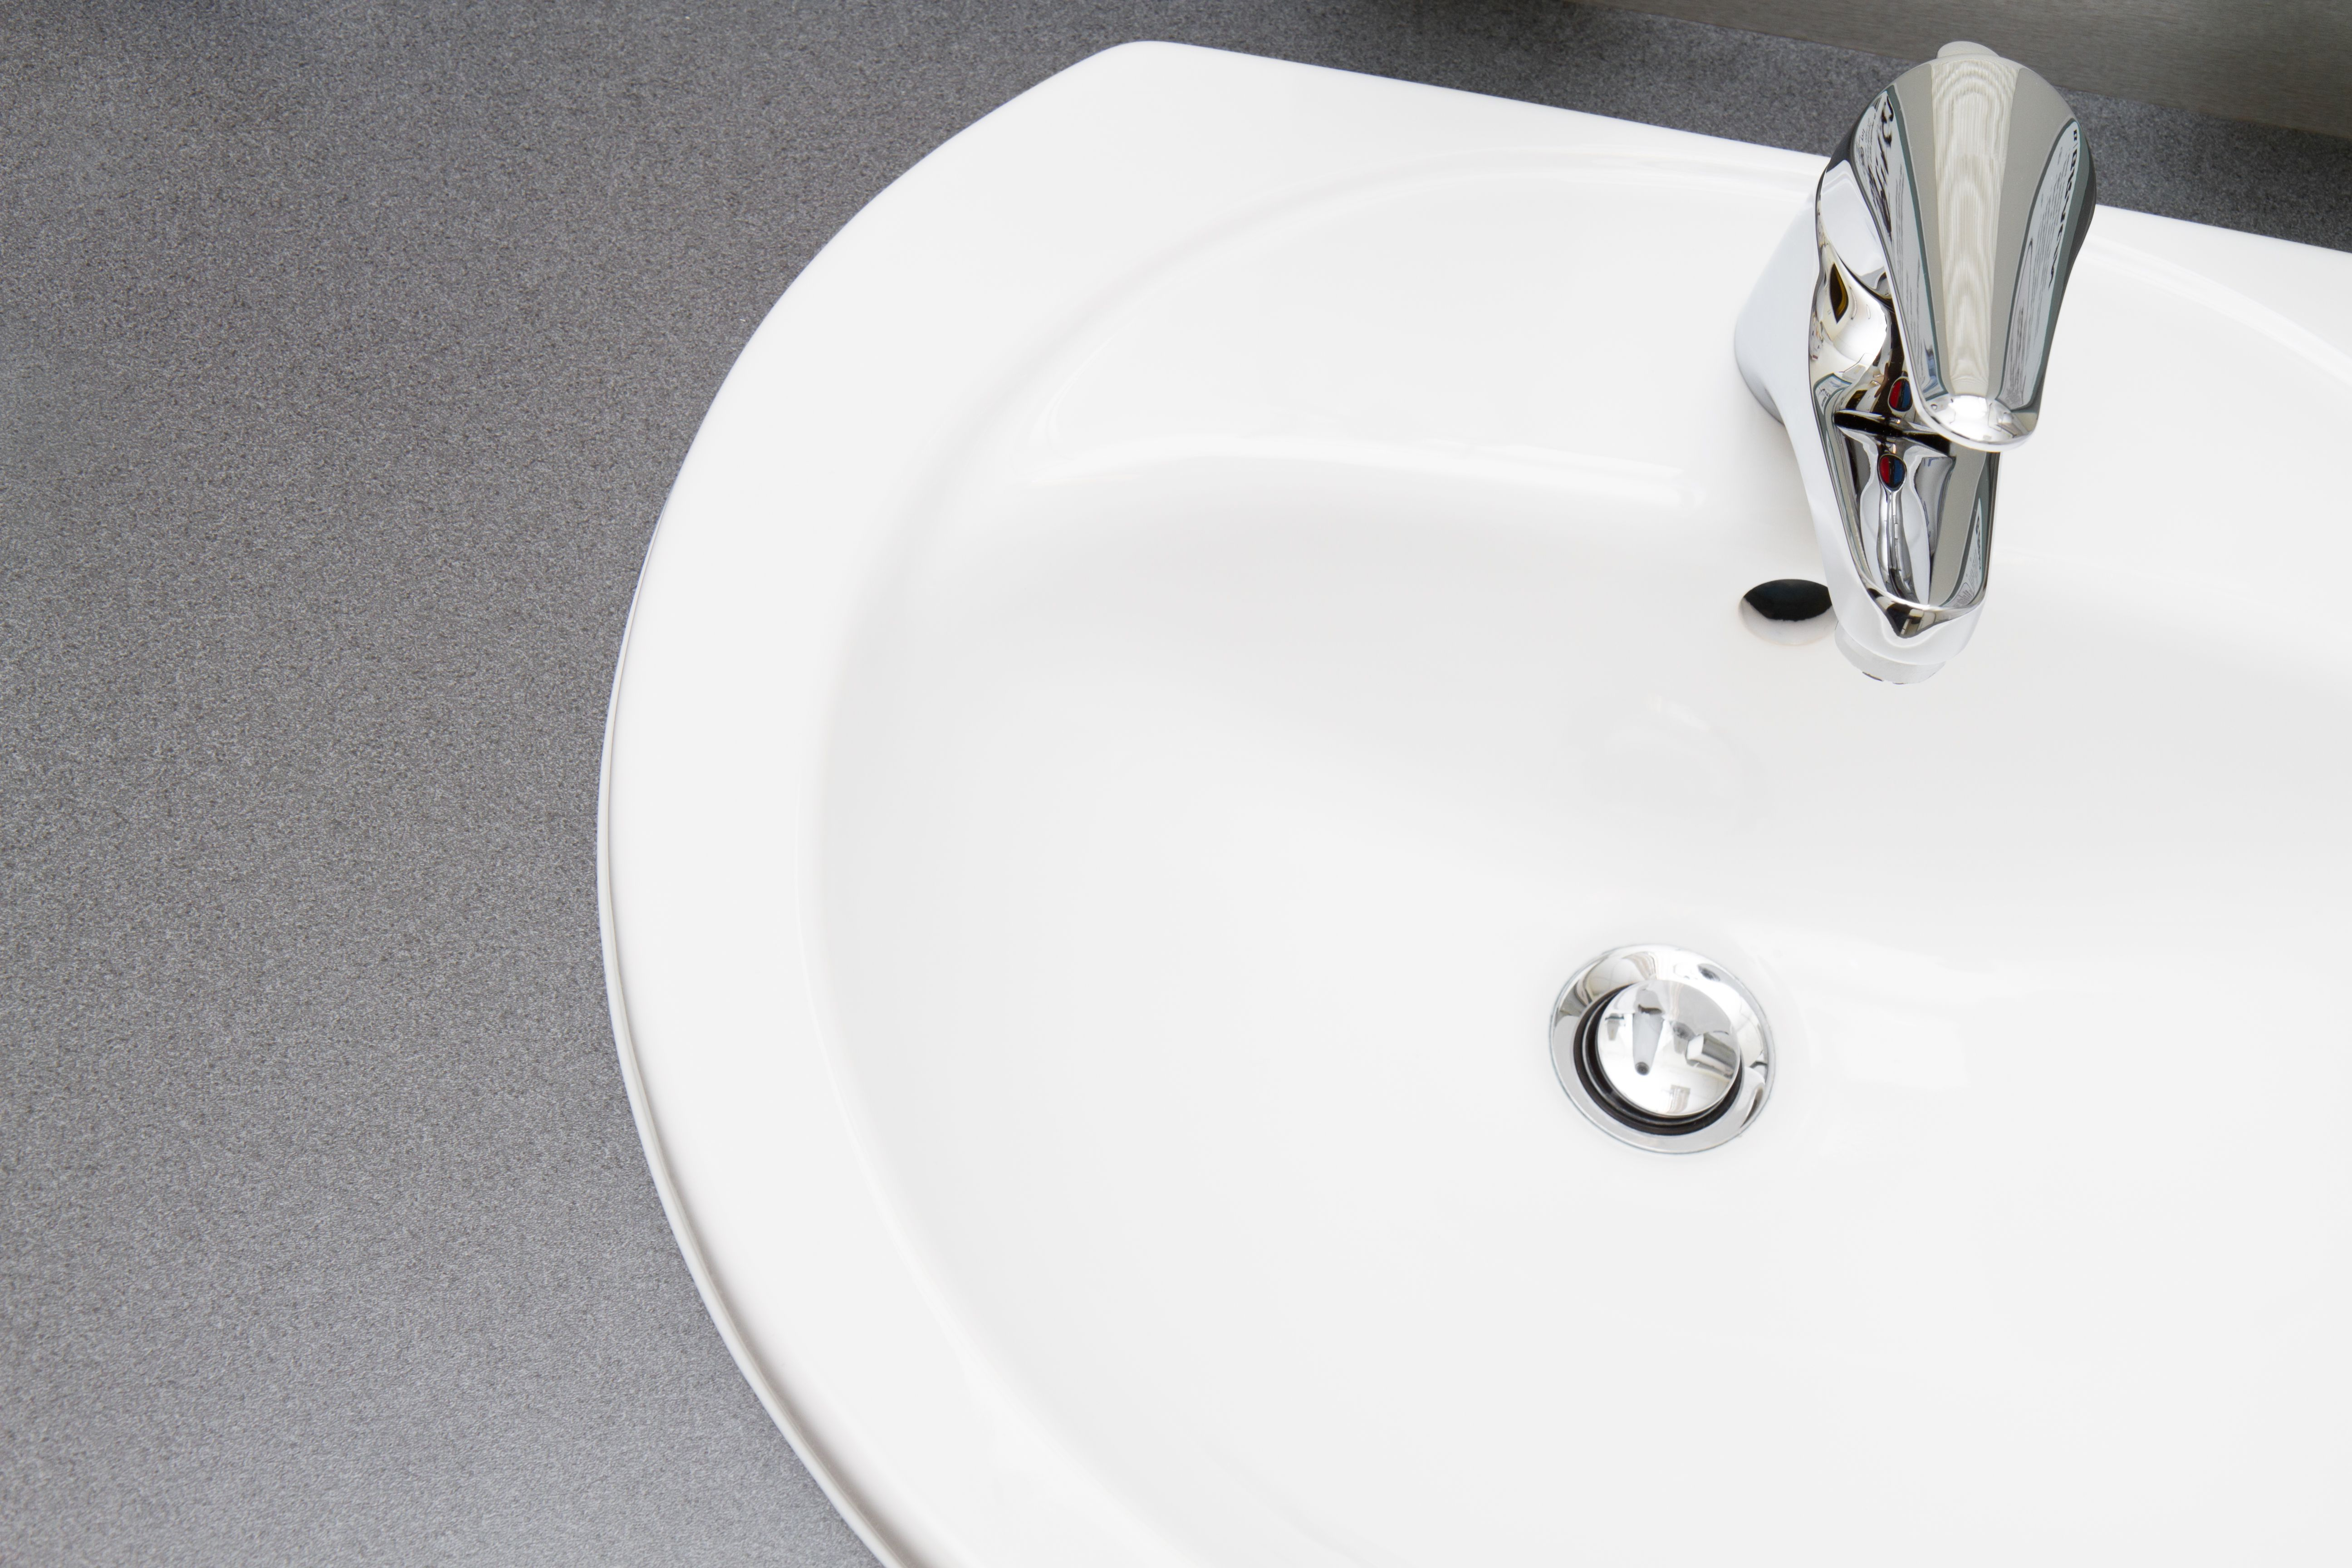 How to Install PopUp Drain in a Bathroom Sink